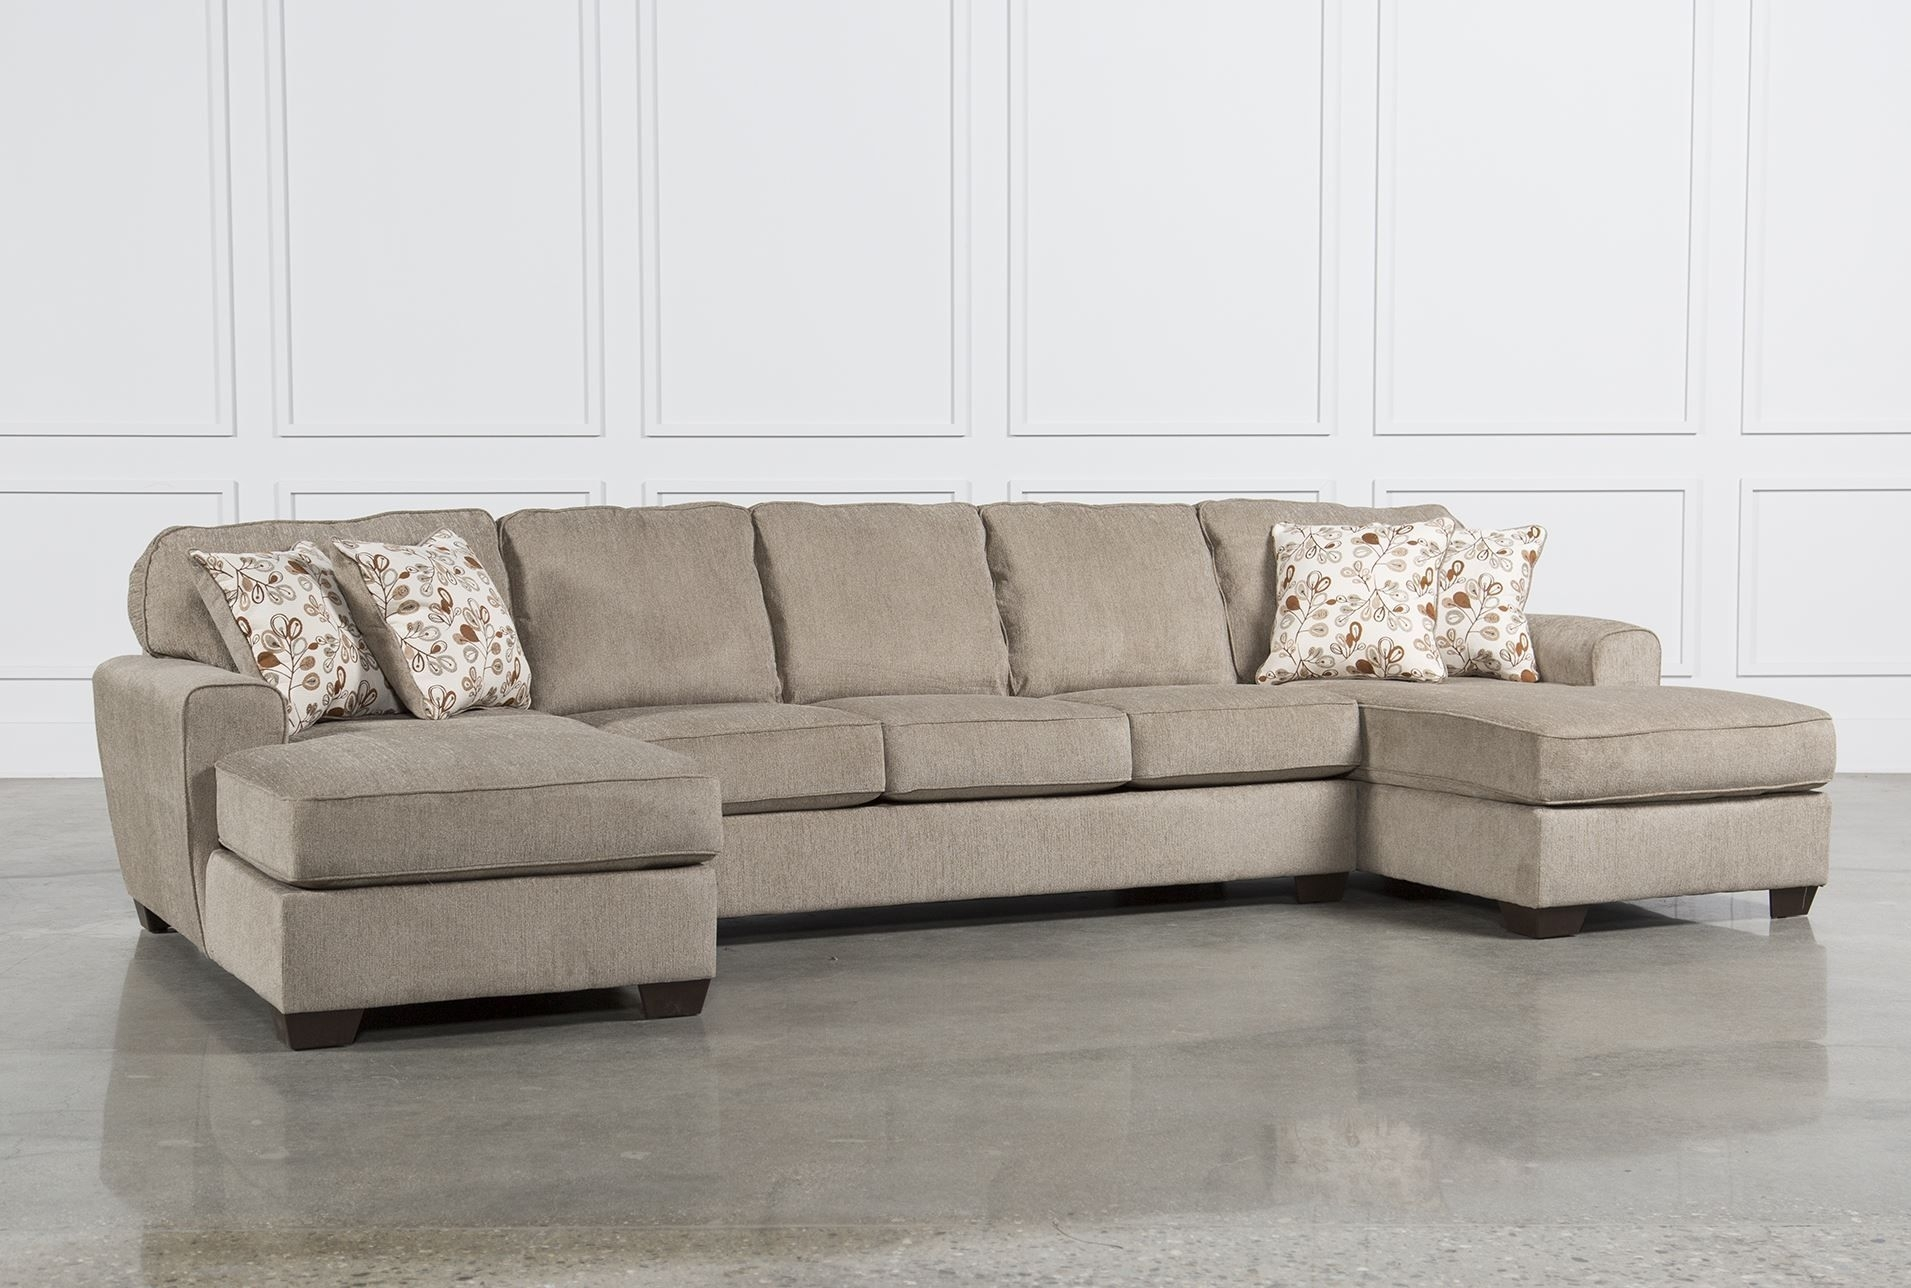 Patola Park 3 Piece Sectional W/2 Corner Chaises | Mountain Modern Within Malbry Point 3 Piece Sectionals With Laf Chaise (Photo 8 of 30)